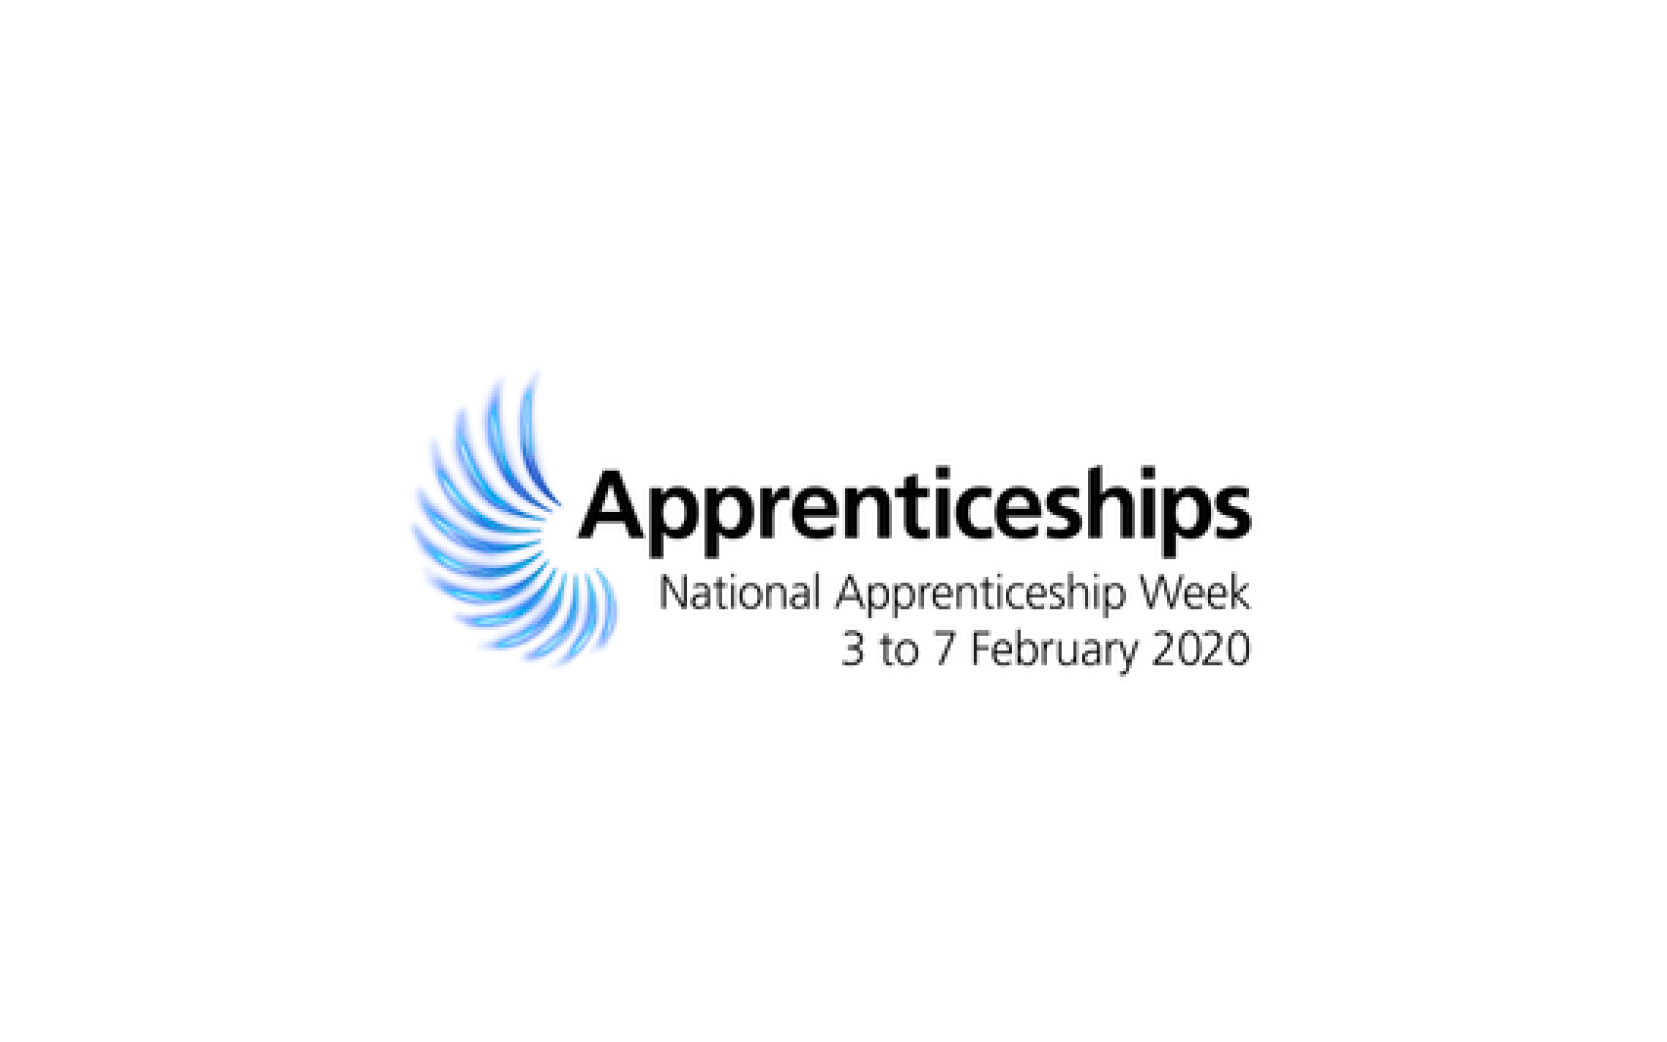 National Apprenticeship Week 2020 to take place in